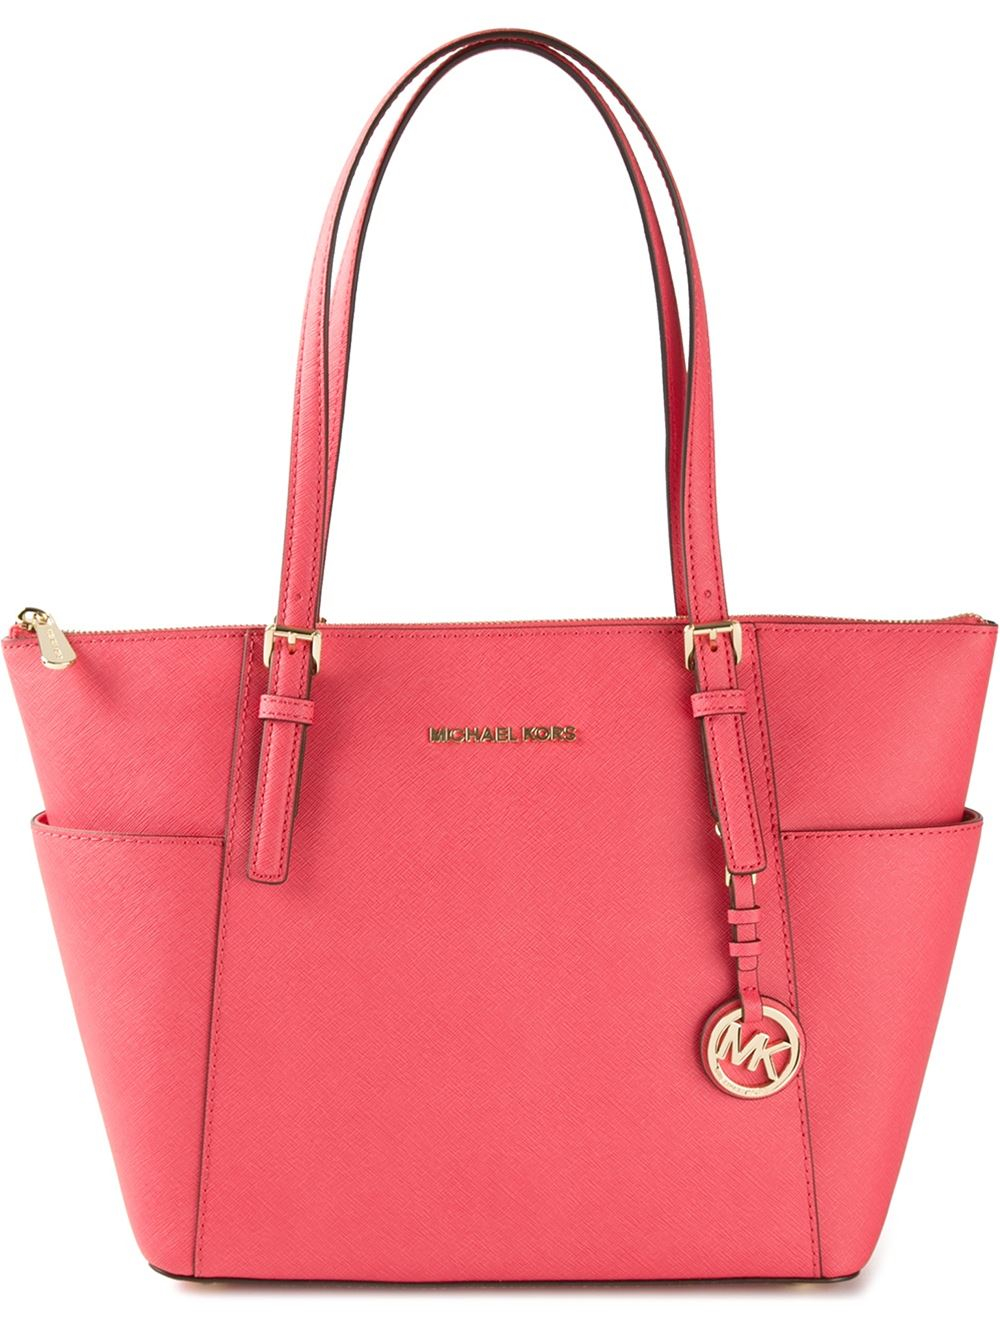 7793ff1a7d3c ... Lyst - Michael Michael Kors Jet Set Top Zip Tote in Red ...